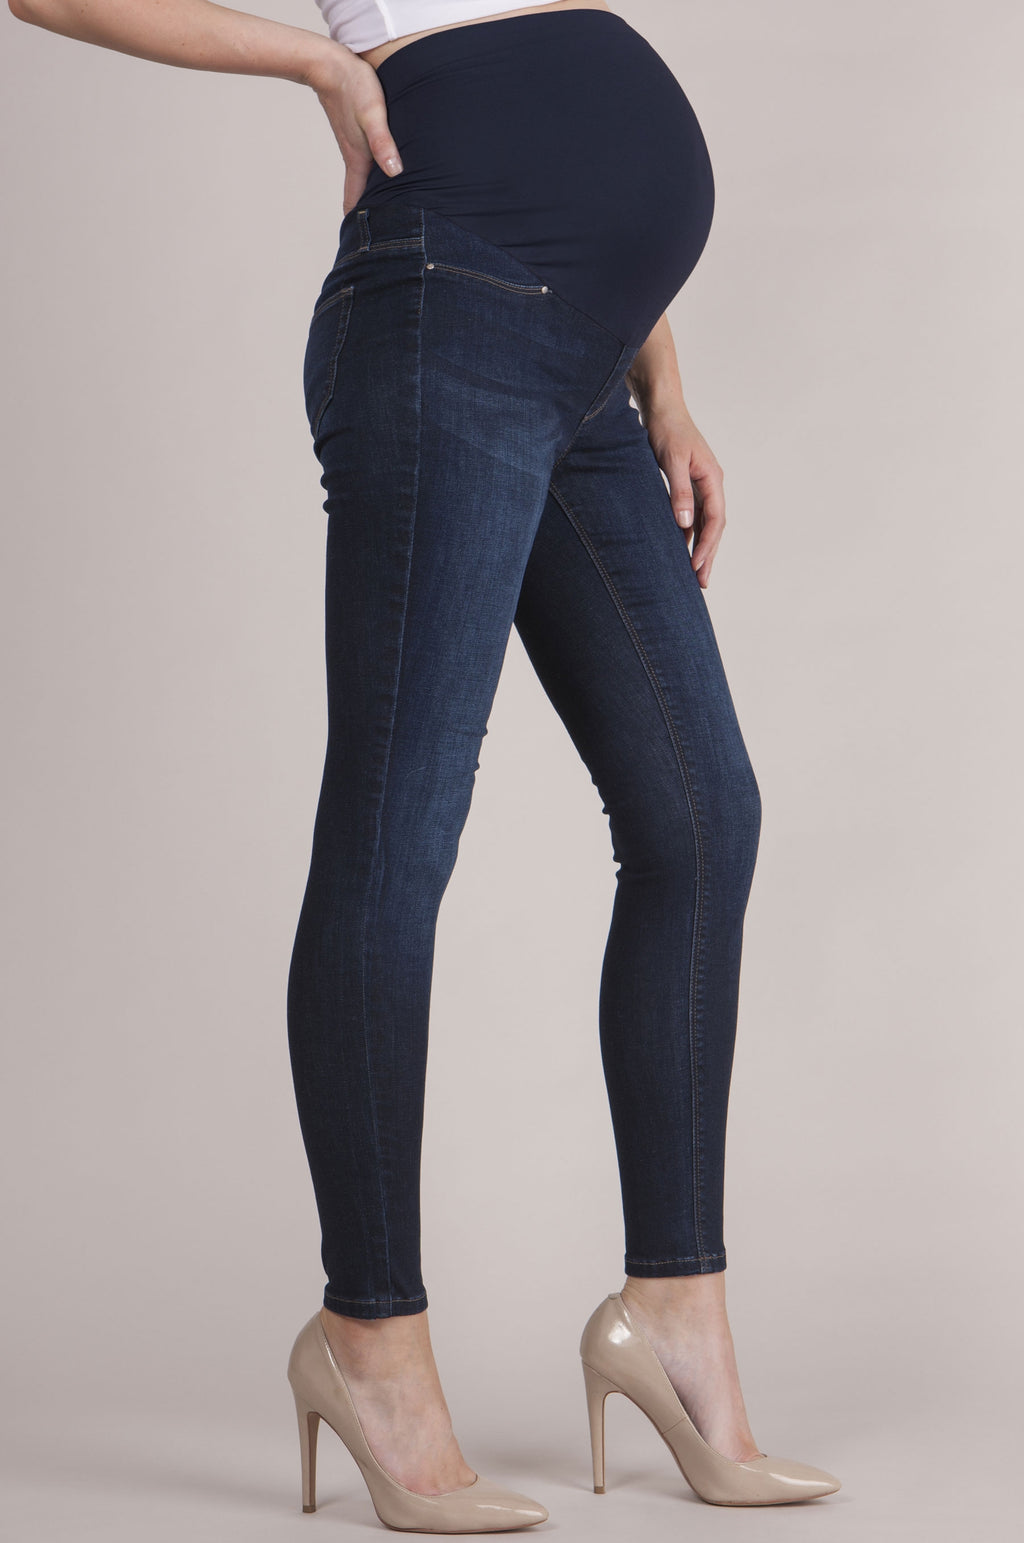 Seraphine Irving Maternity Jeggings